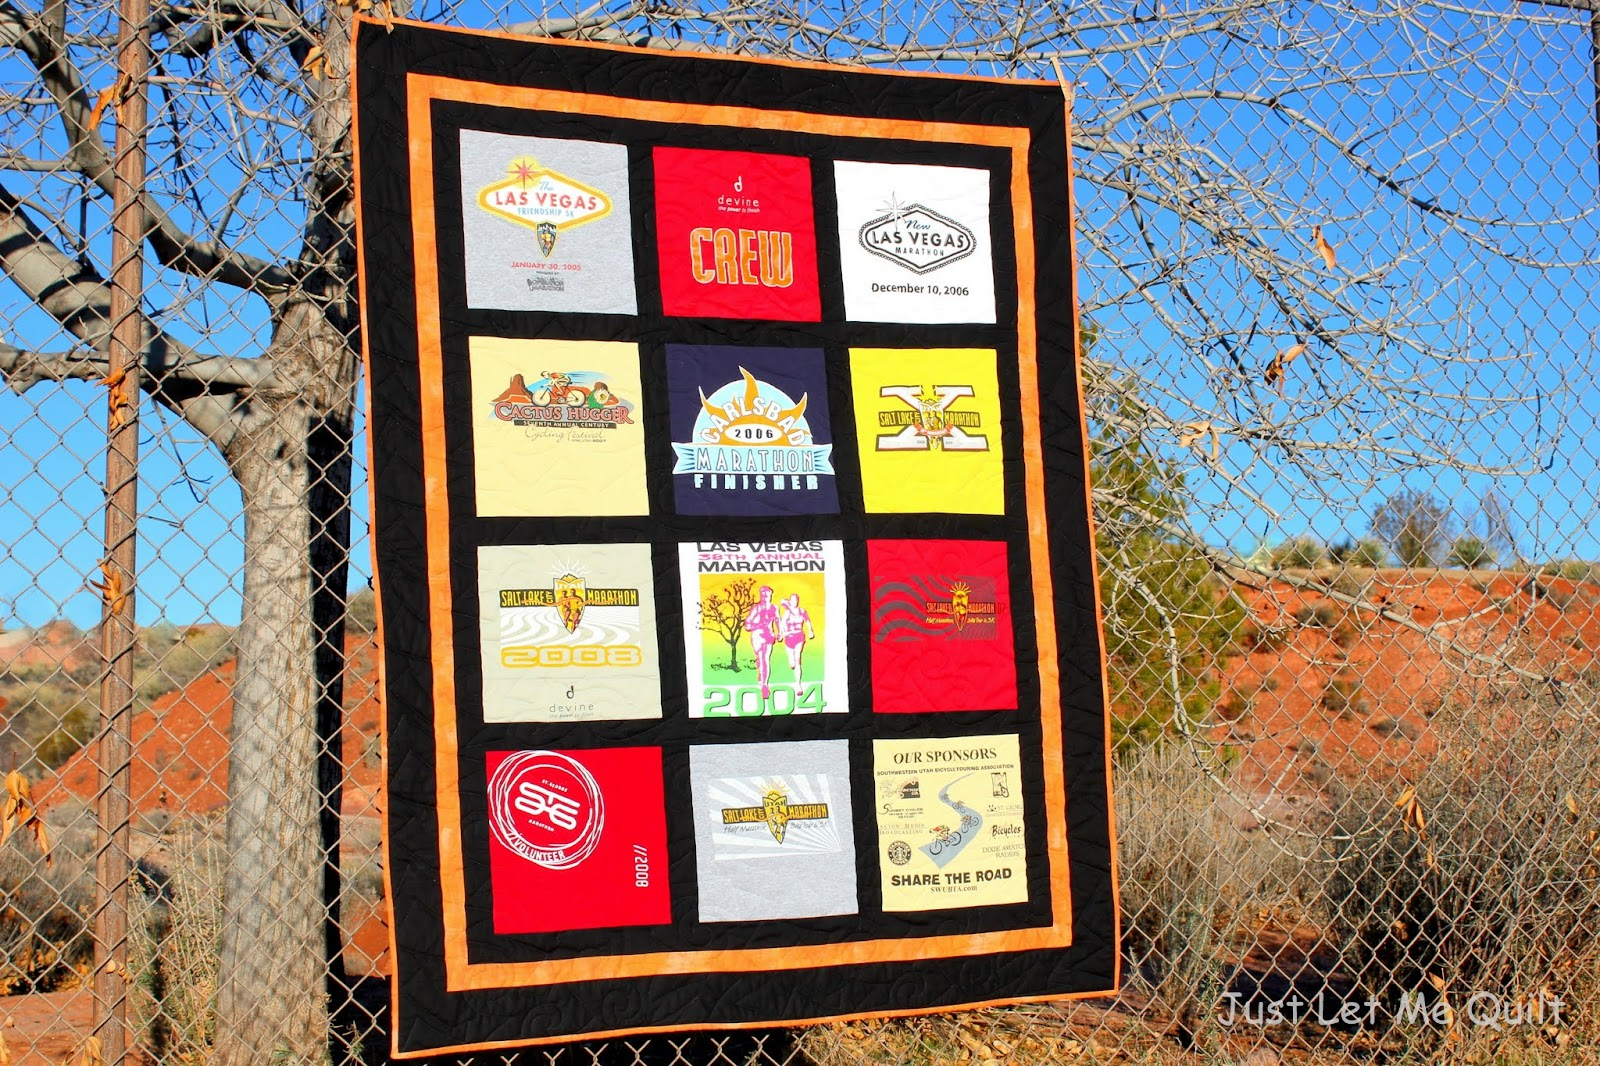 Just Let Me Quilt: Making Old T-Shirts Into A Sweet Memory Quilt